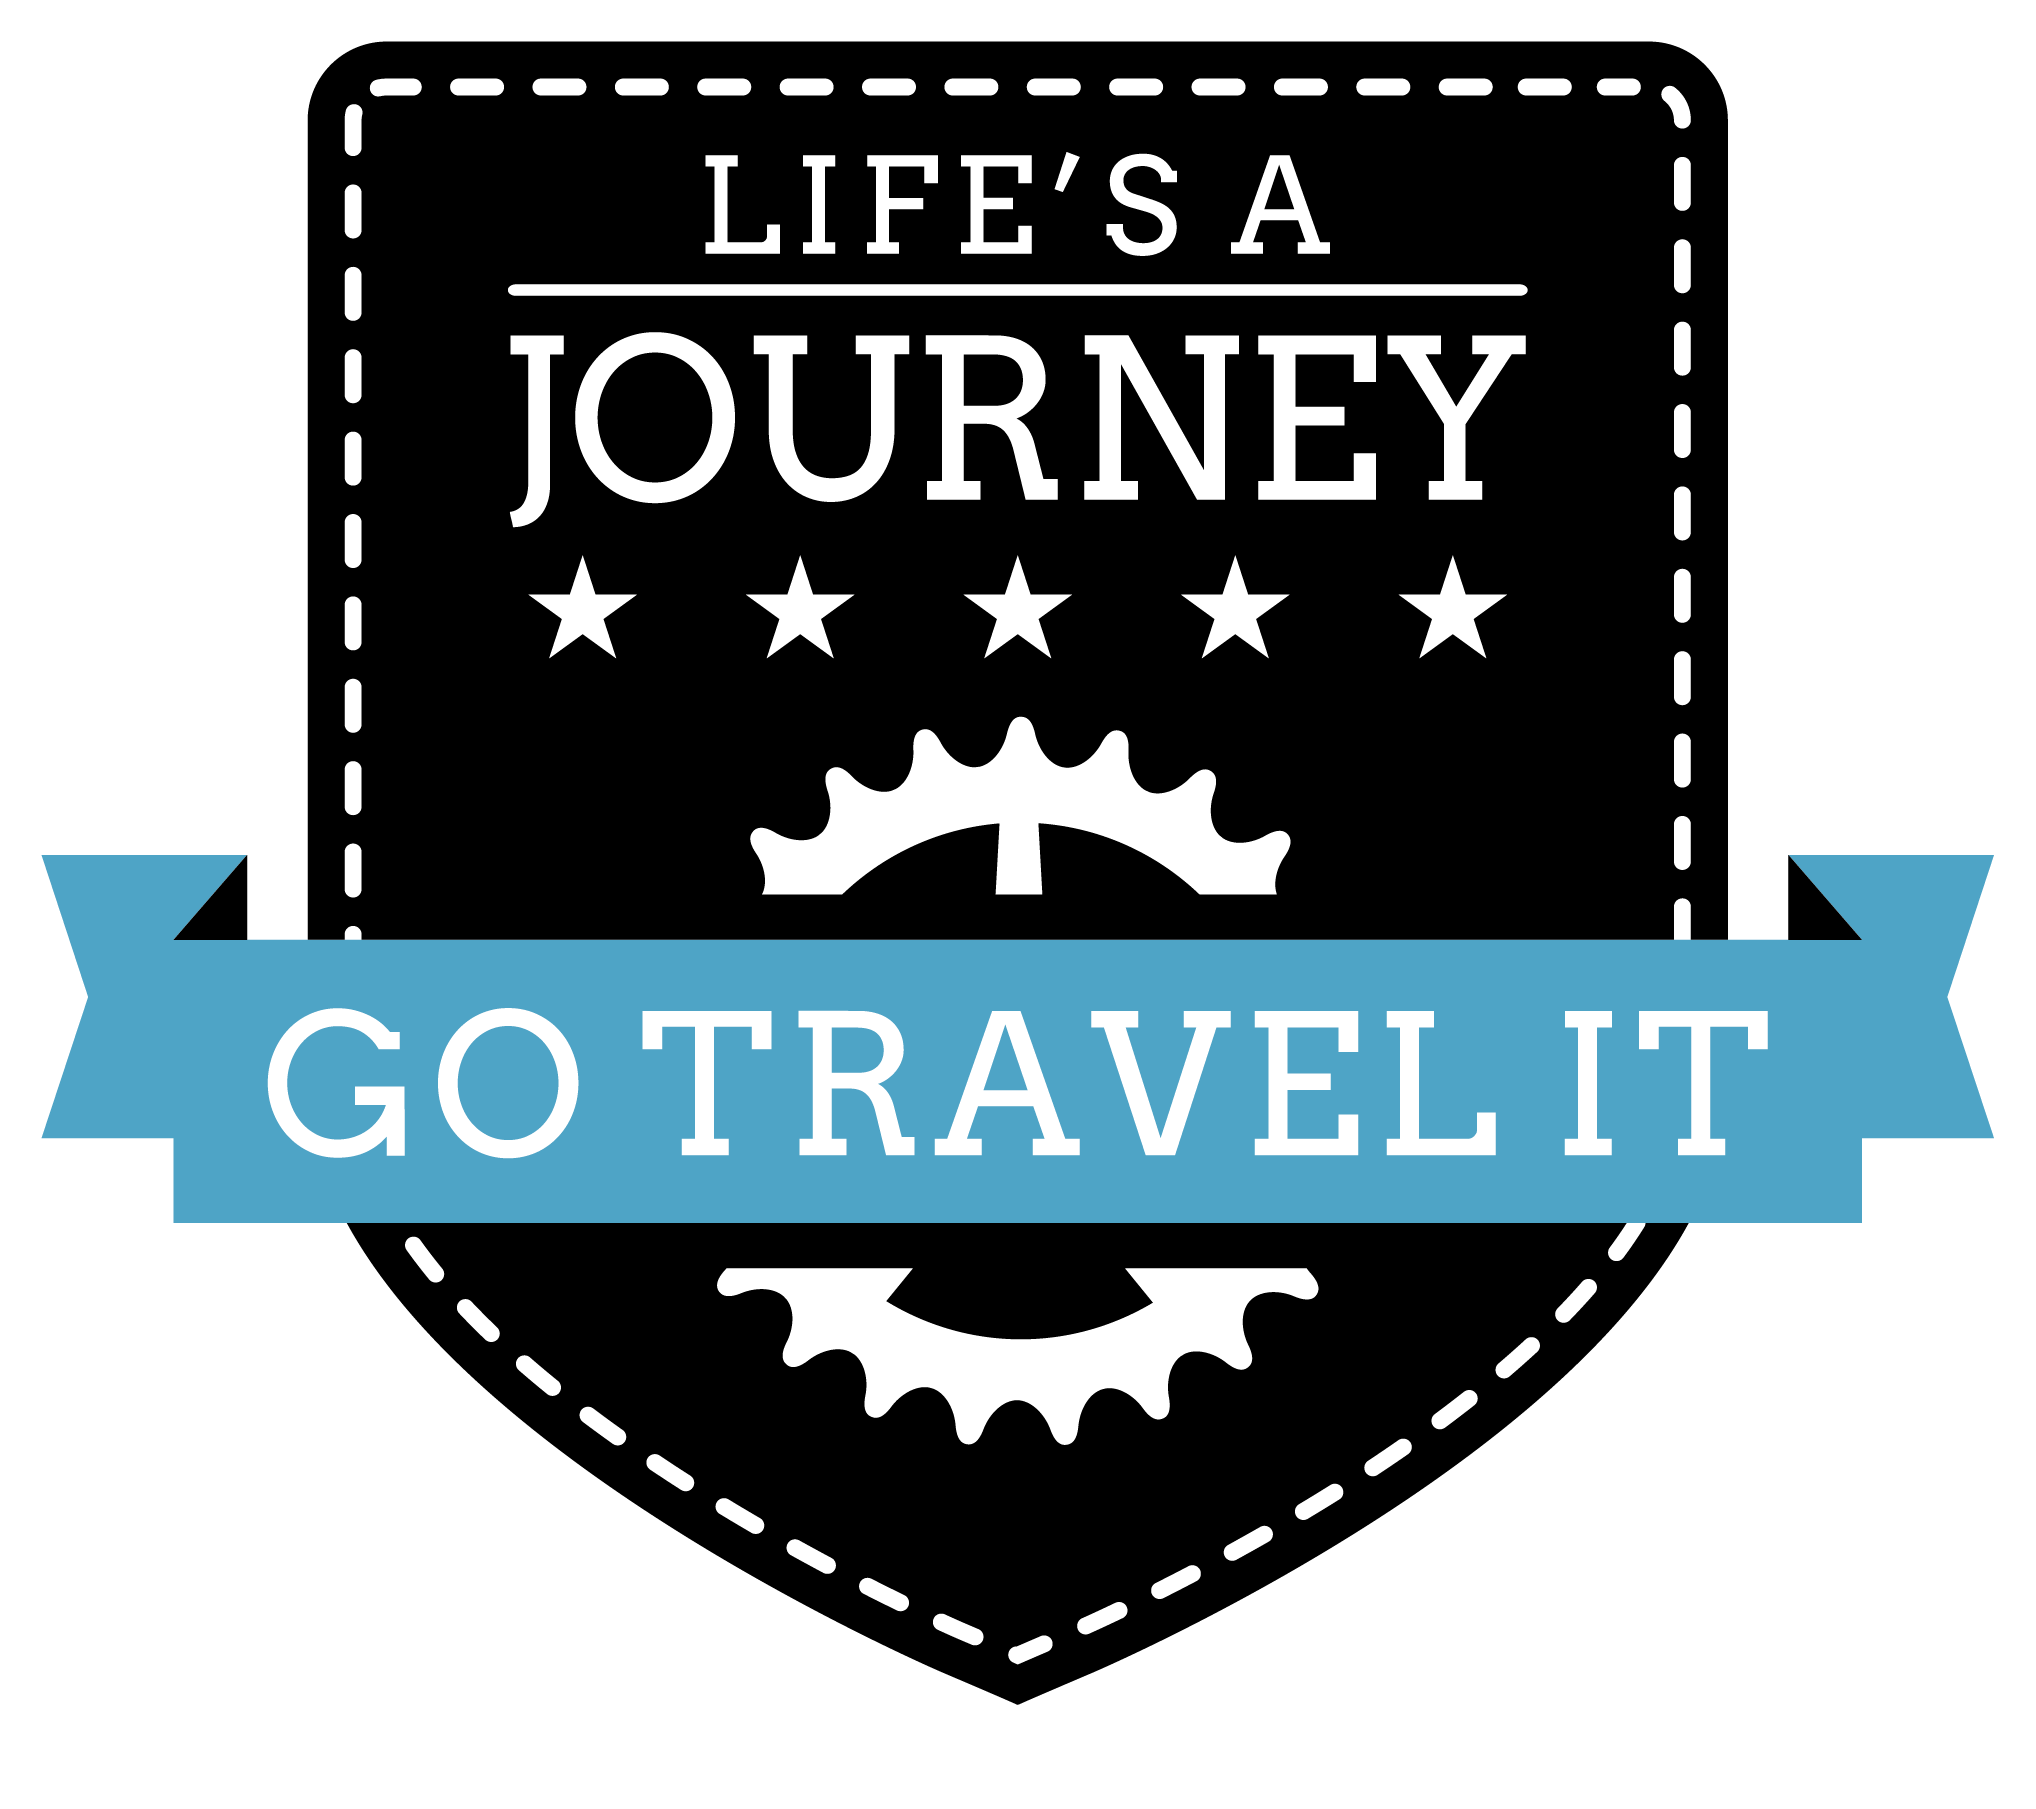 Life's A Journey, Go Travel It